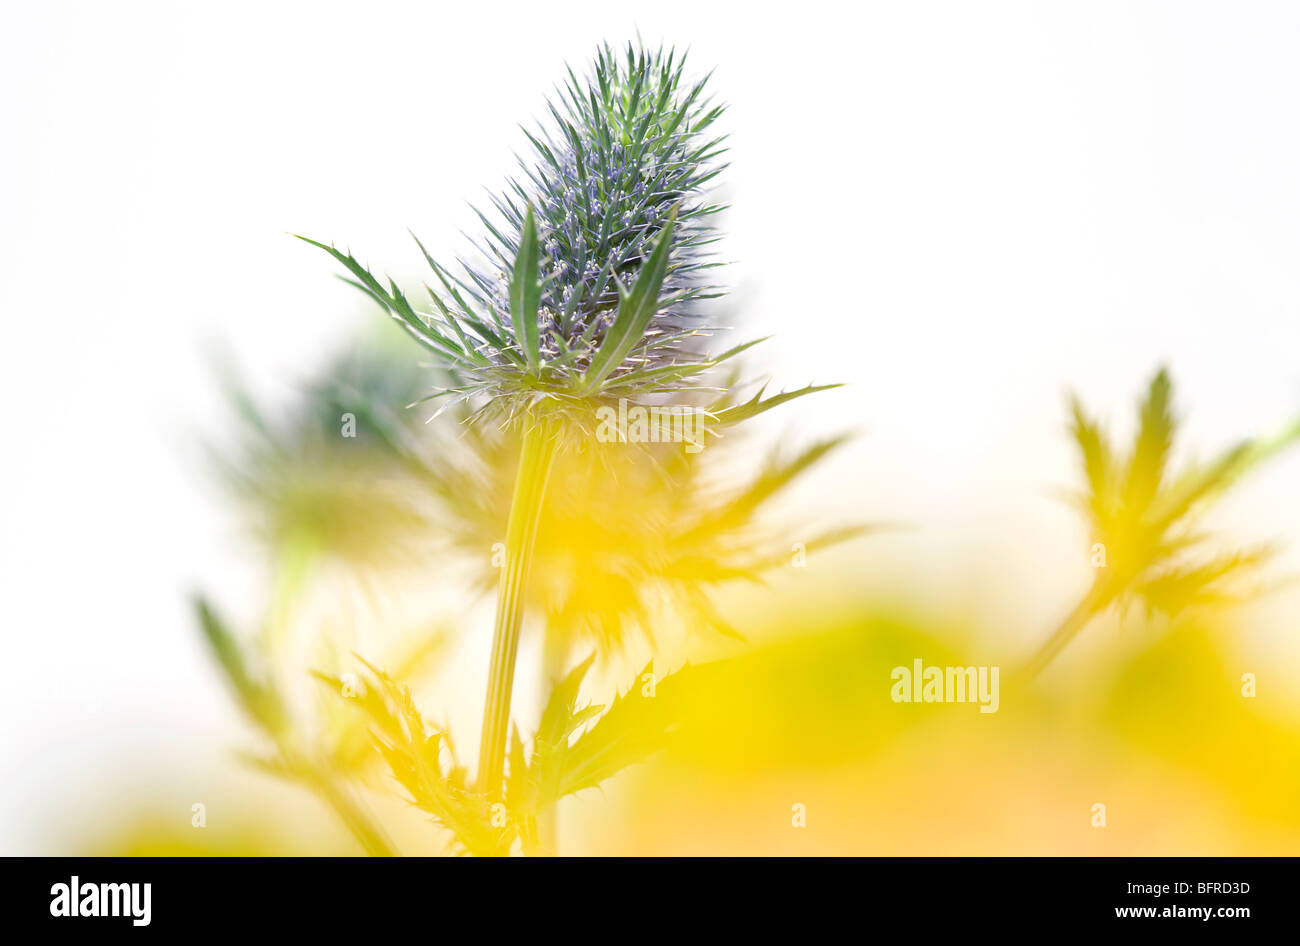 sea holly thistle type plant - Stock Image